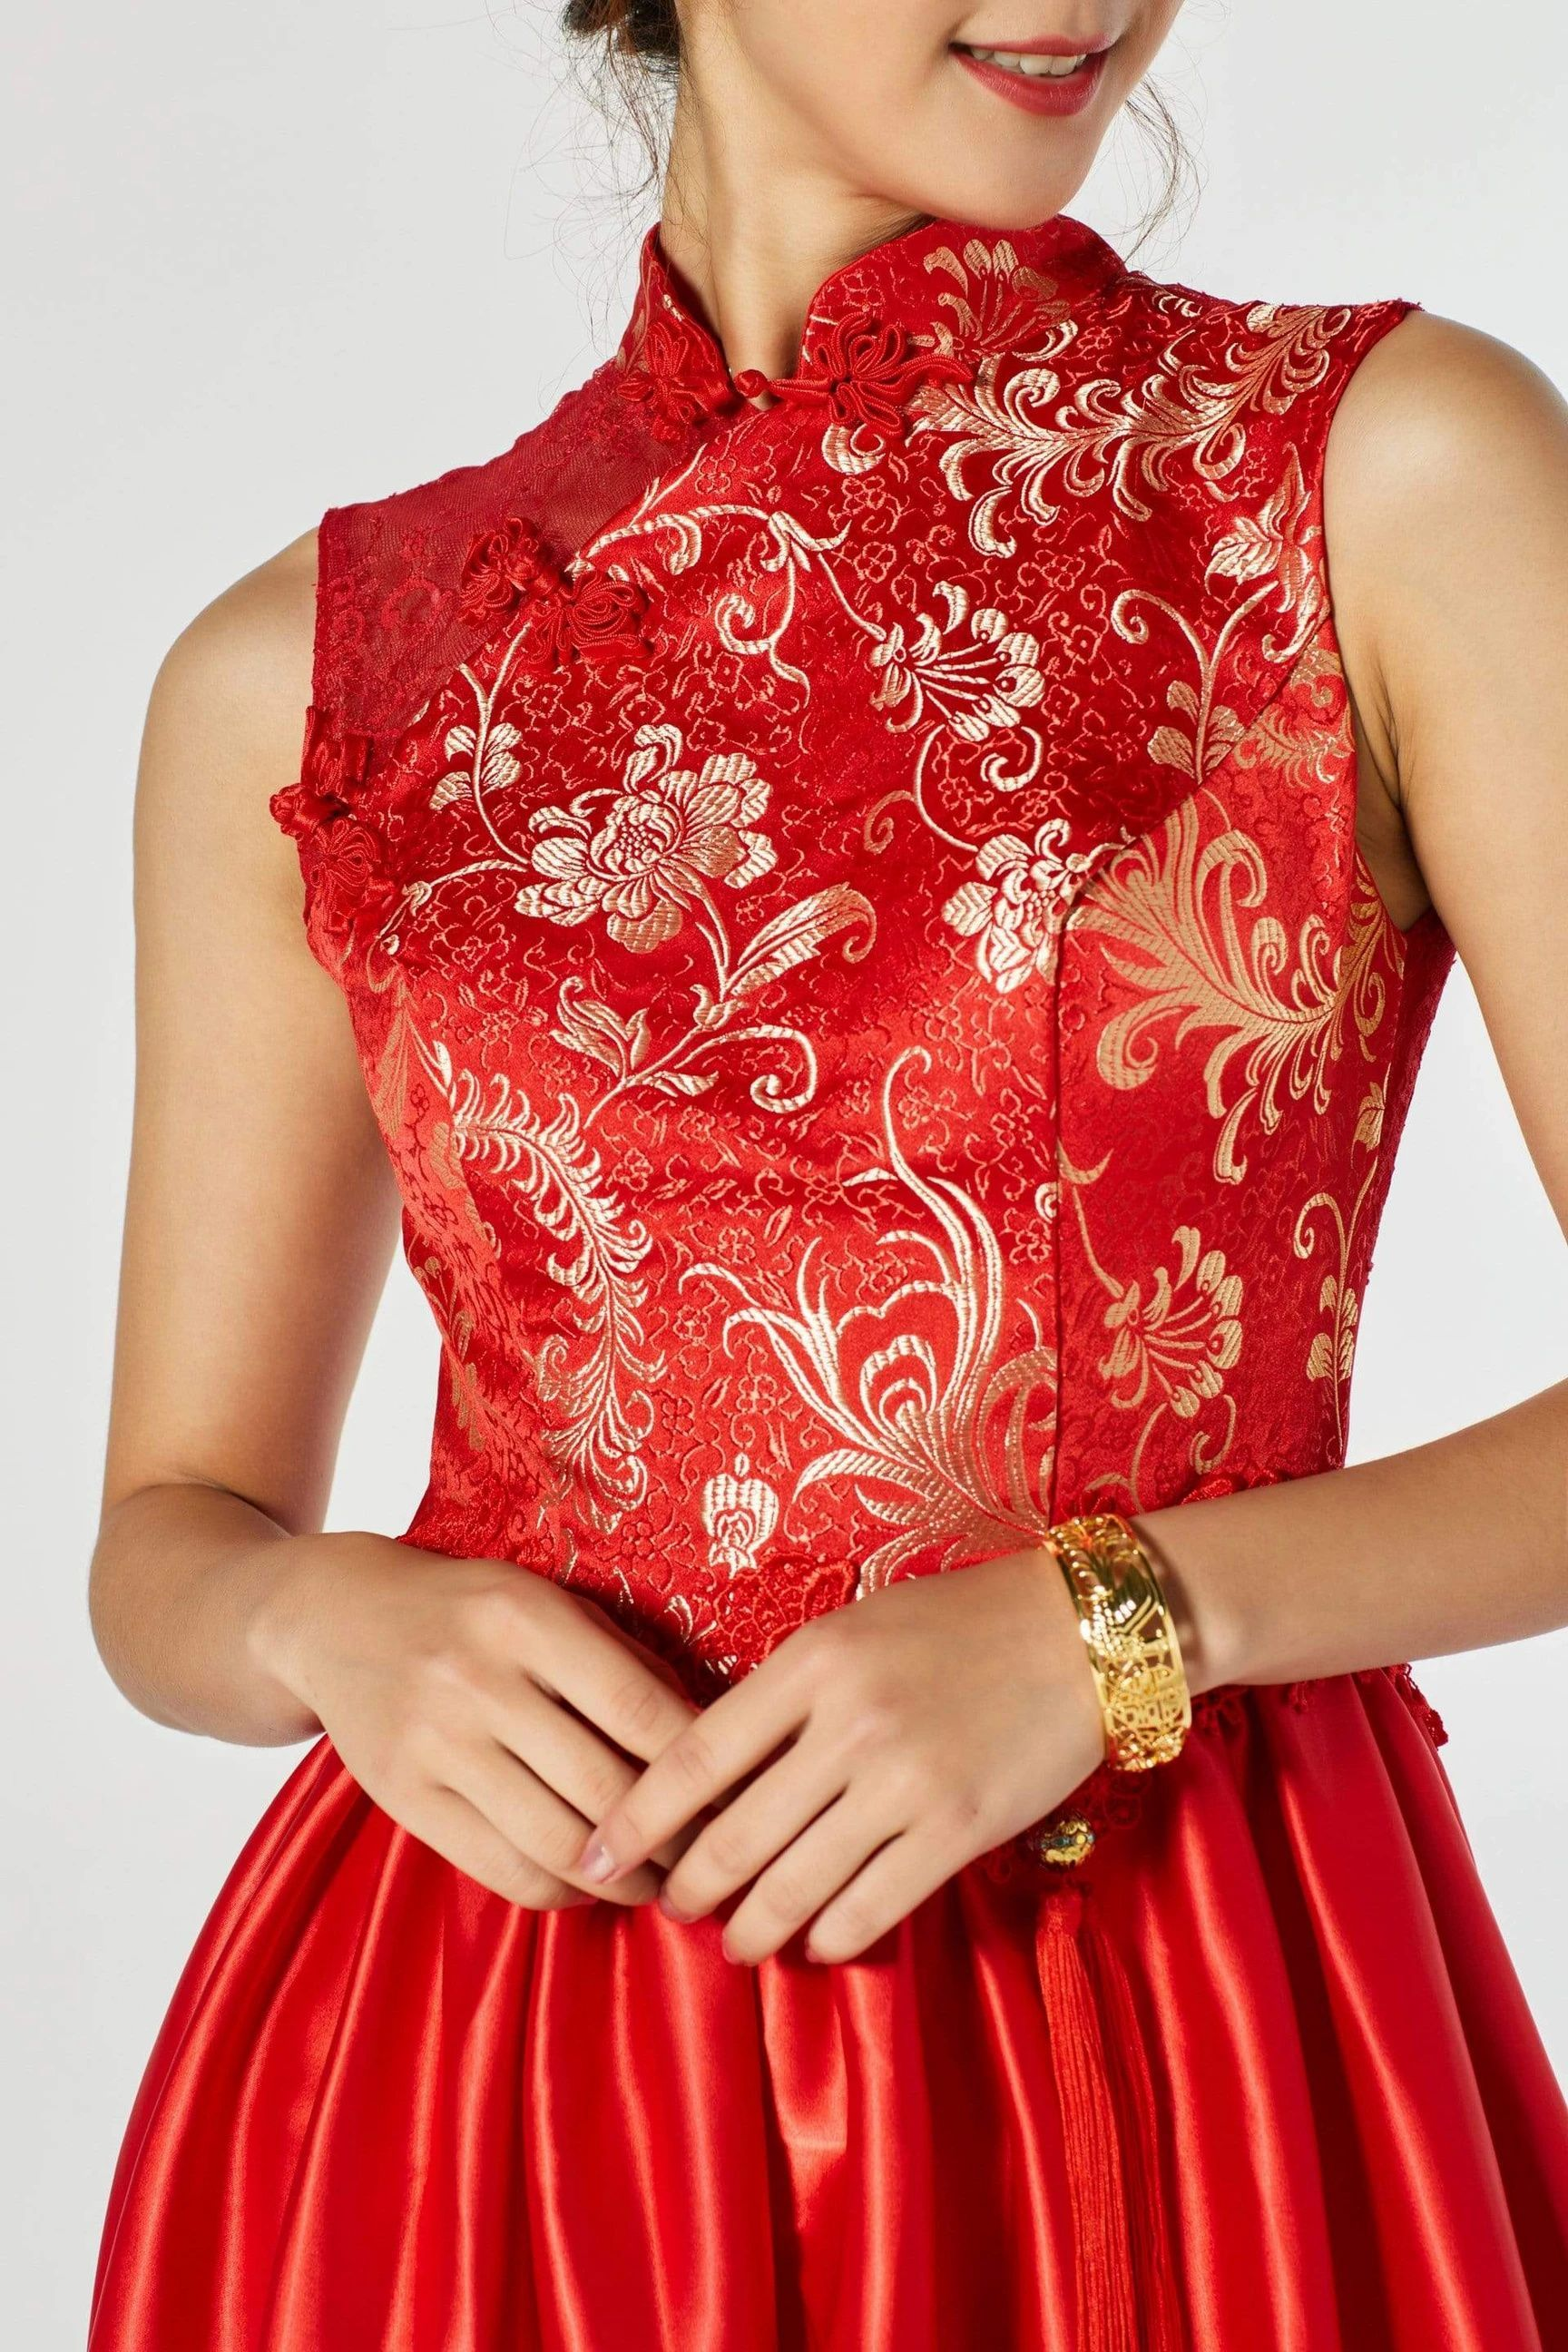 6 Qipao Dress Fabric Types You Need To Know Before Buying Ceremony Dresses Qipao Dress Red Chinese Dress [ 2592 x 1728 Pixel ]